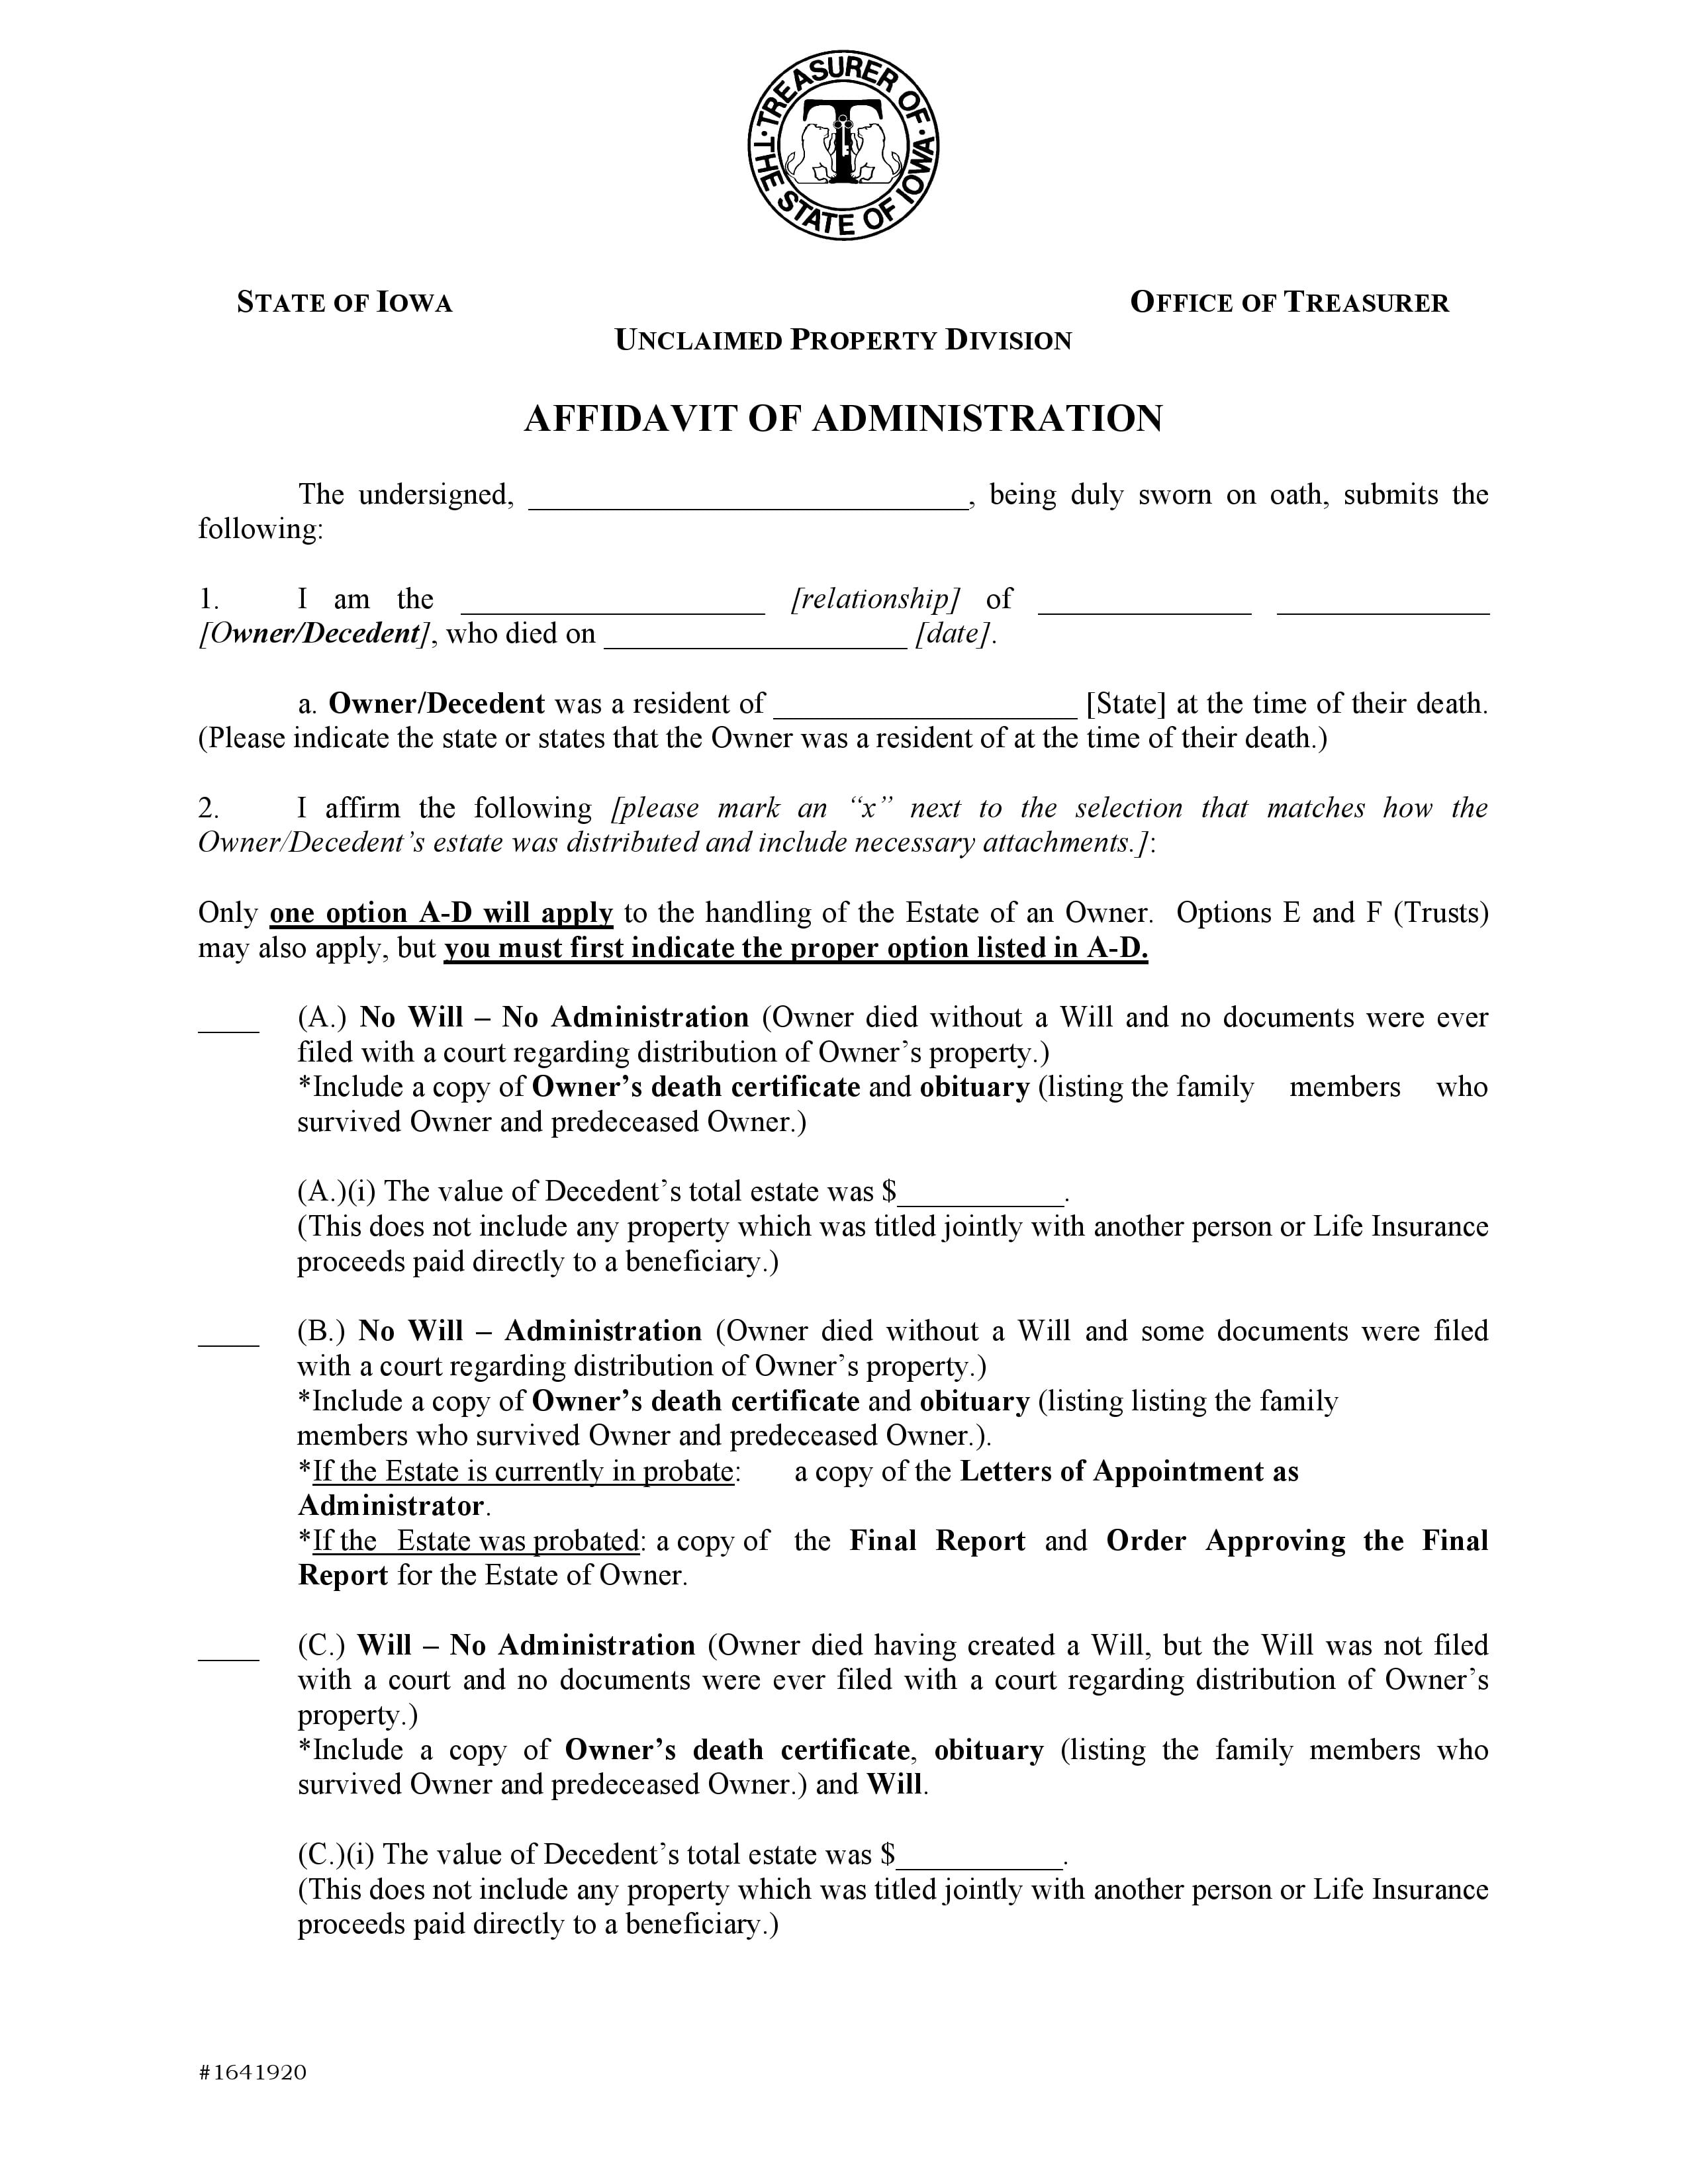 Iowa Small Estate Affidavit